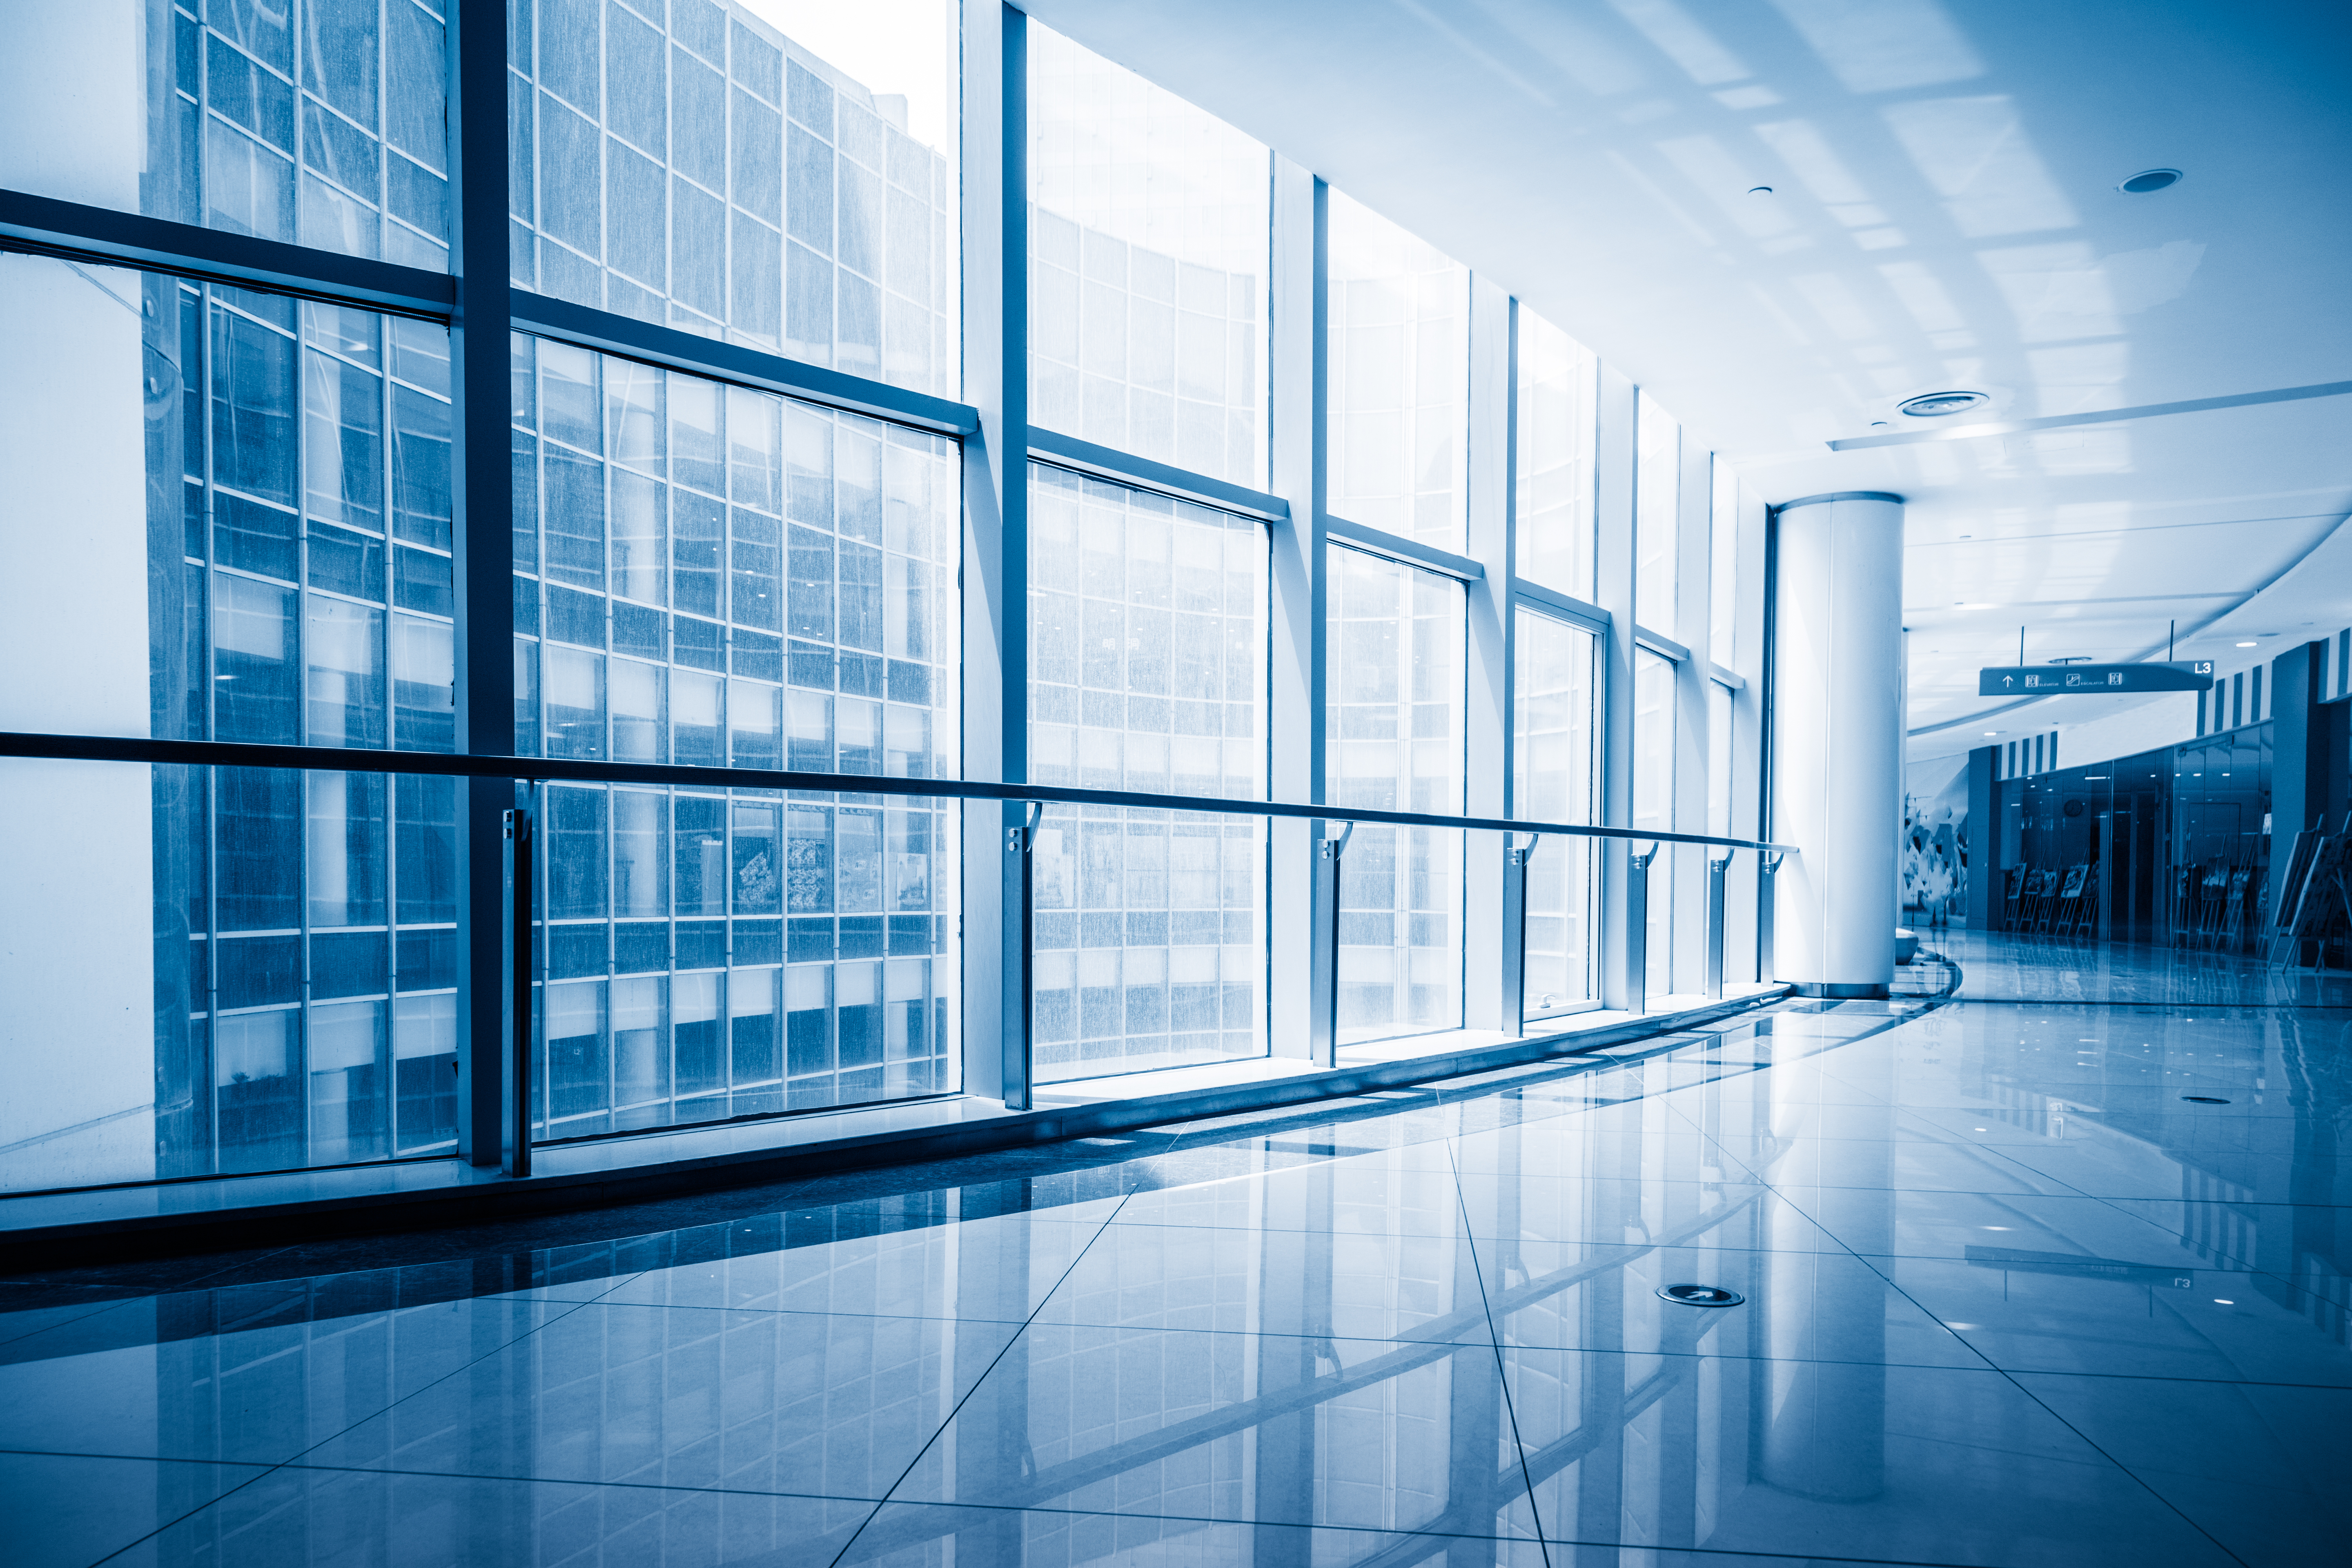 Modern Building Corridor With Glass Windows,Blue Toned,China